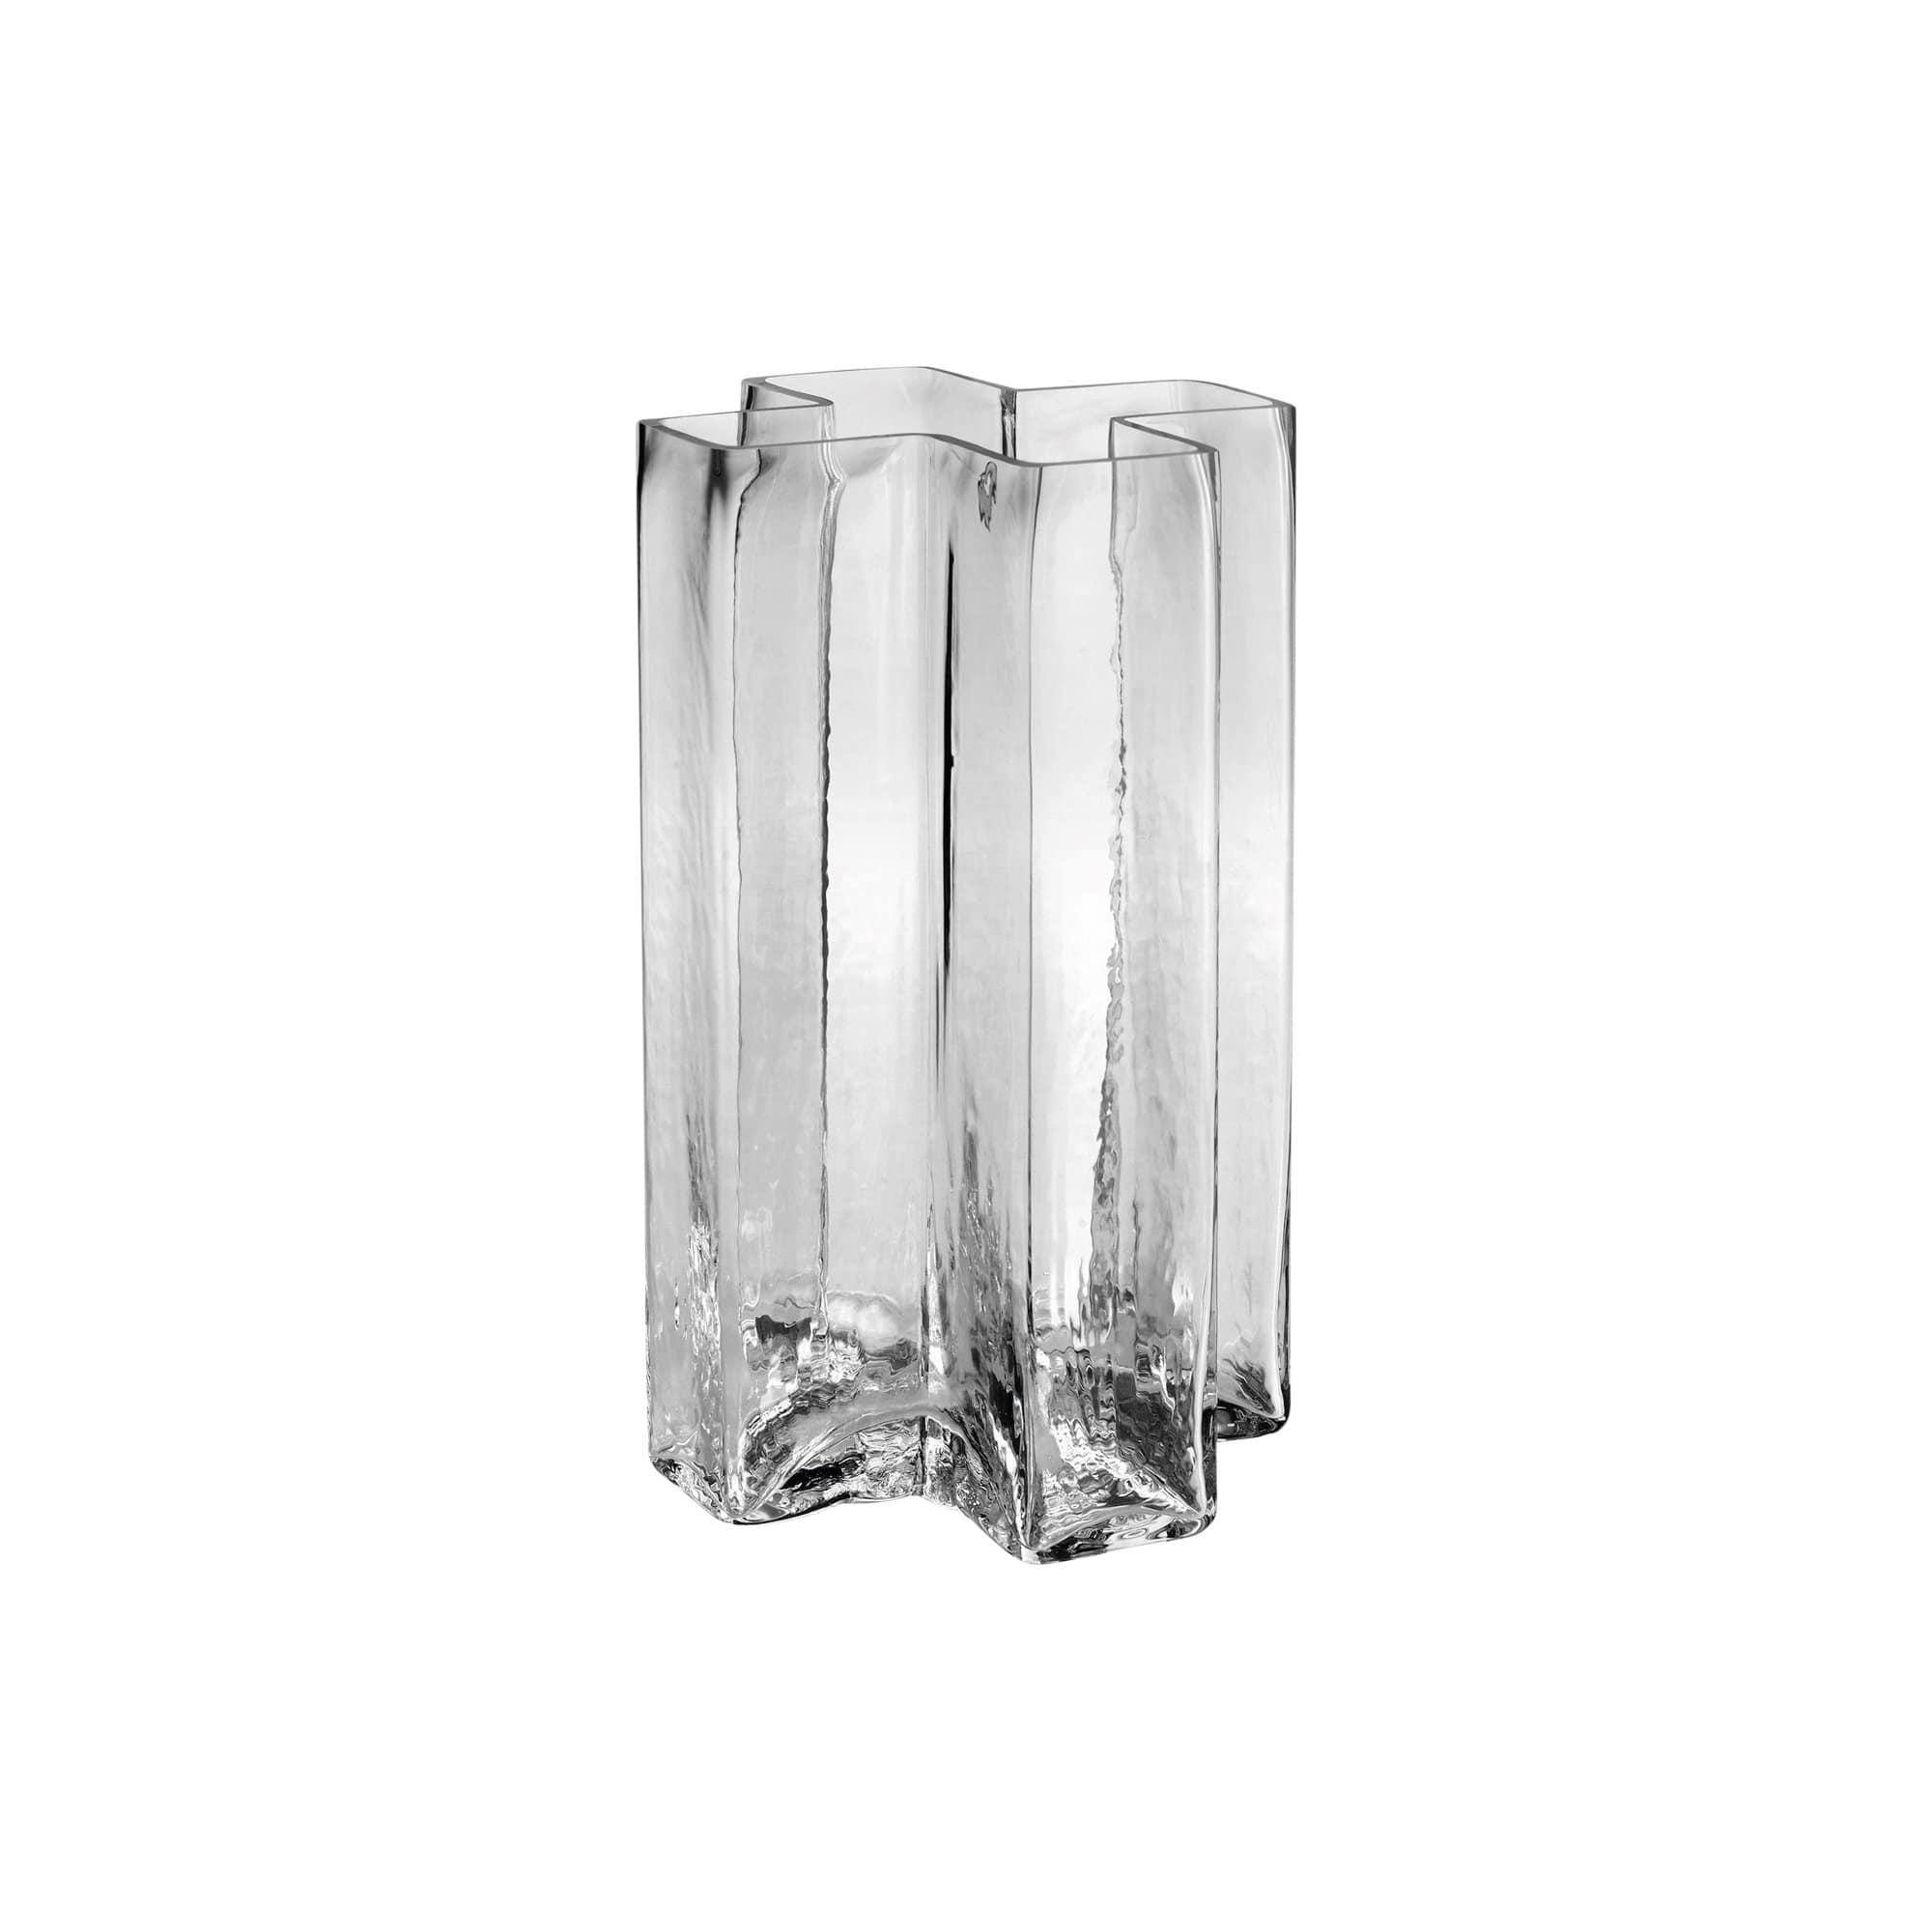 Holmegaard Decor Holmegaard Crosses Vase, Clear, 7""